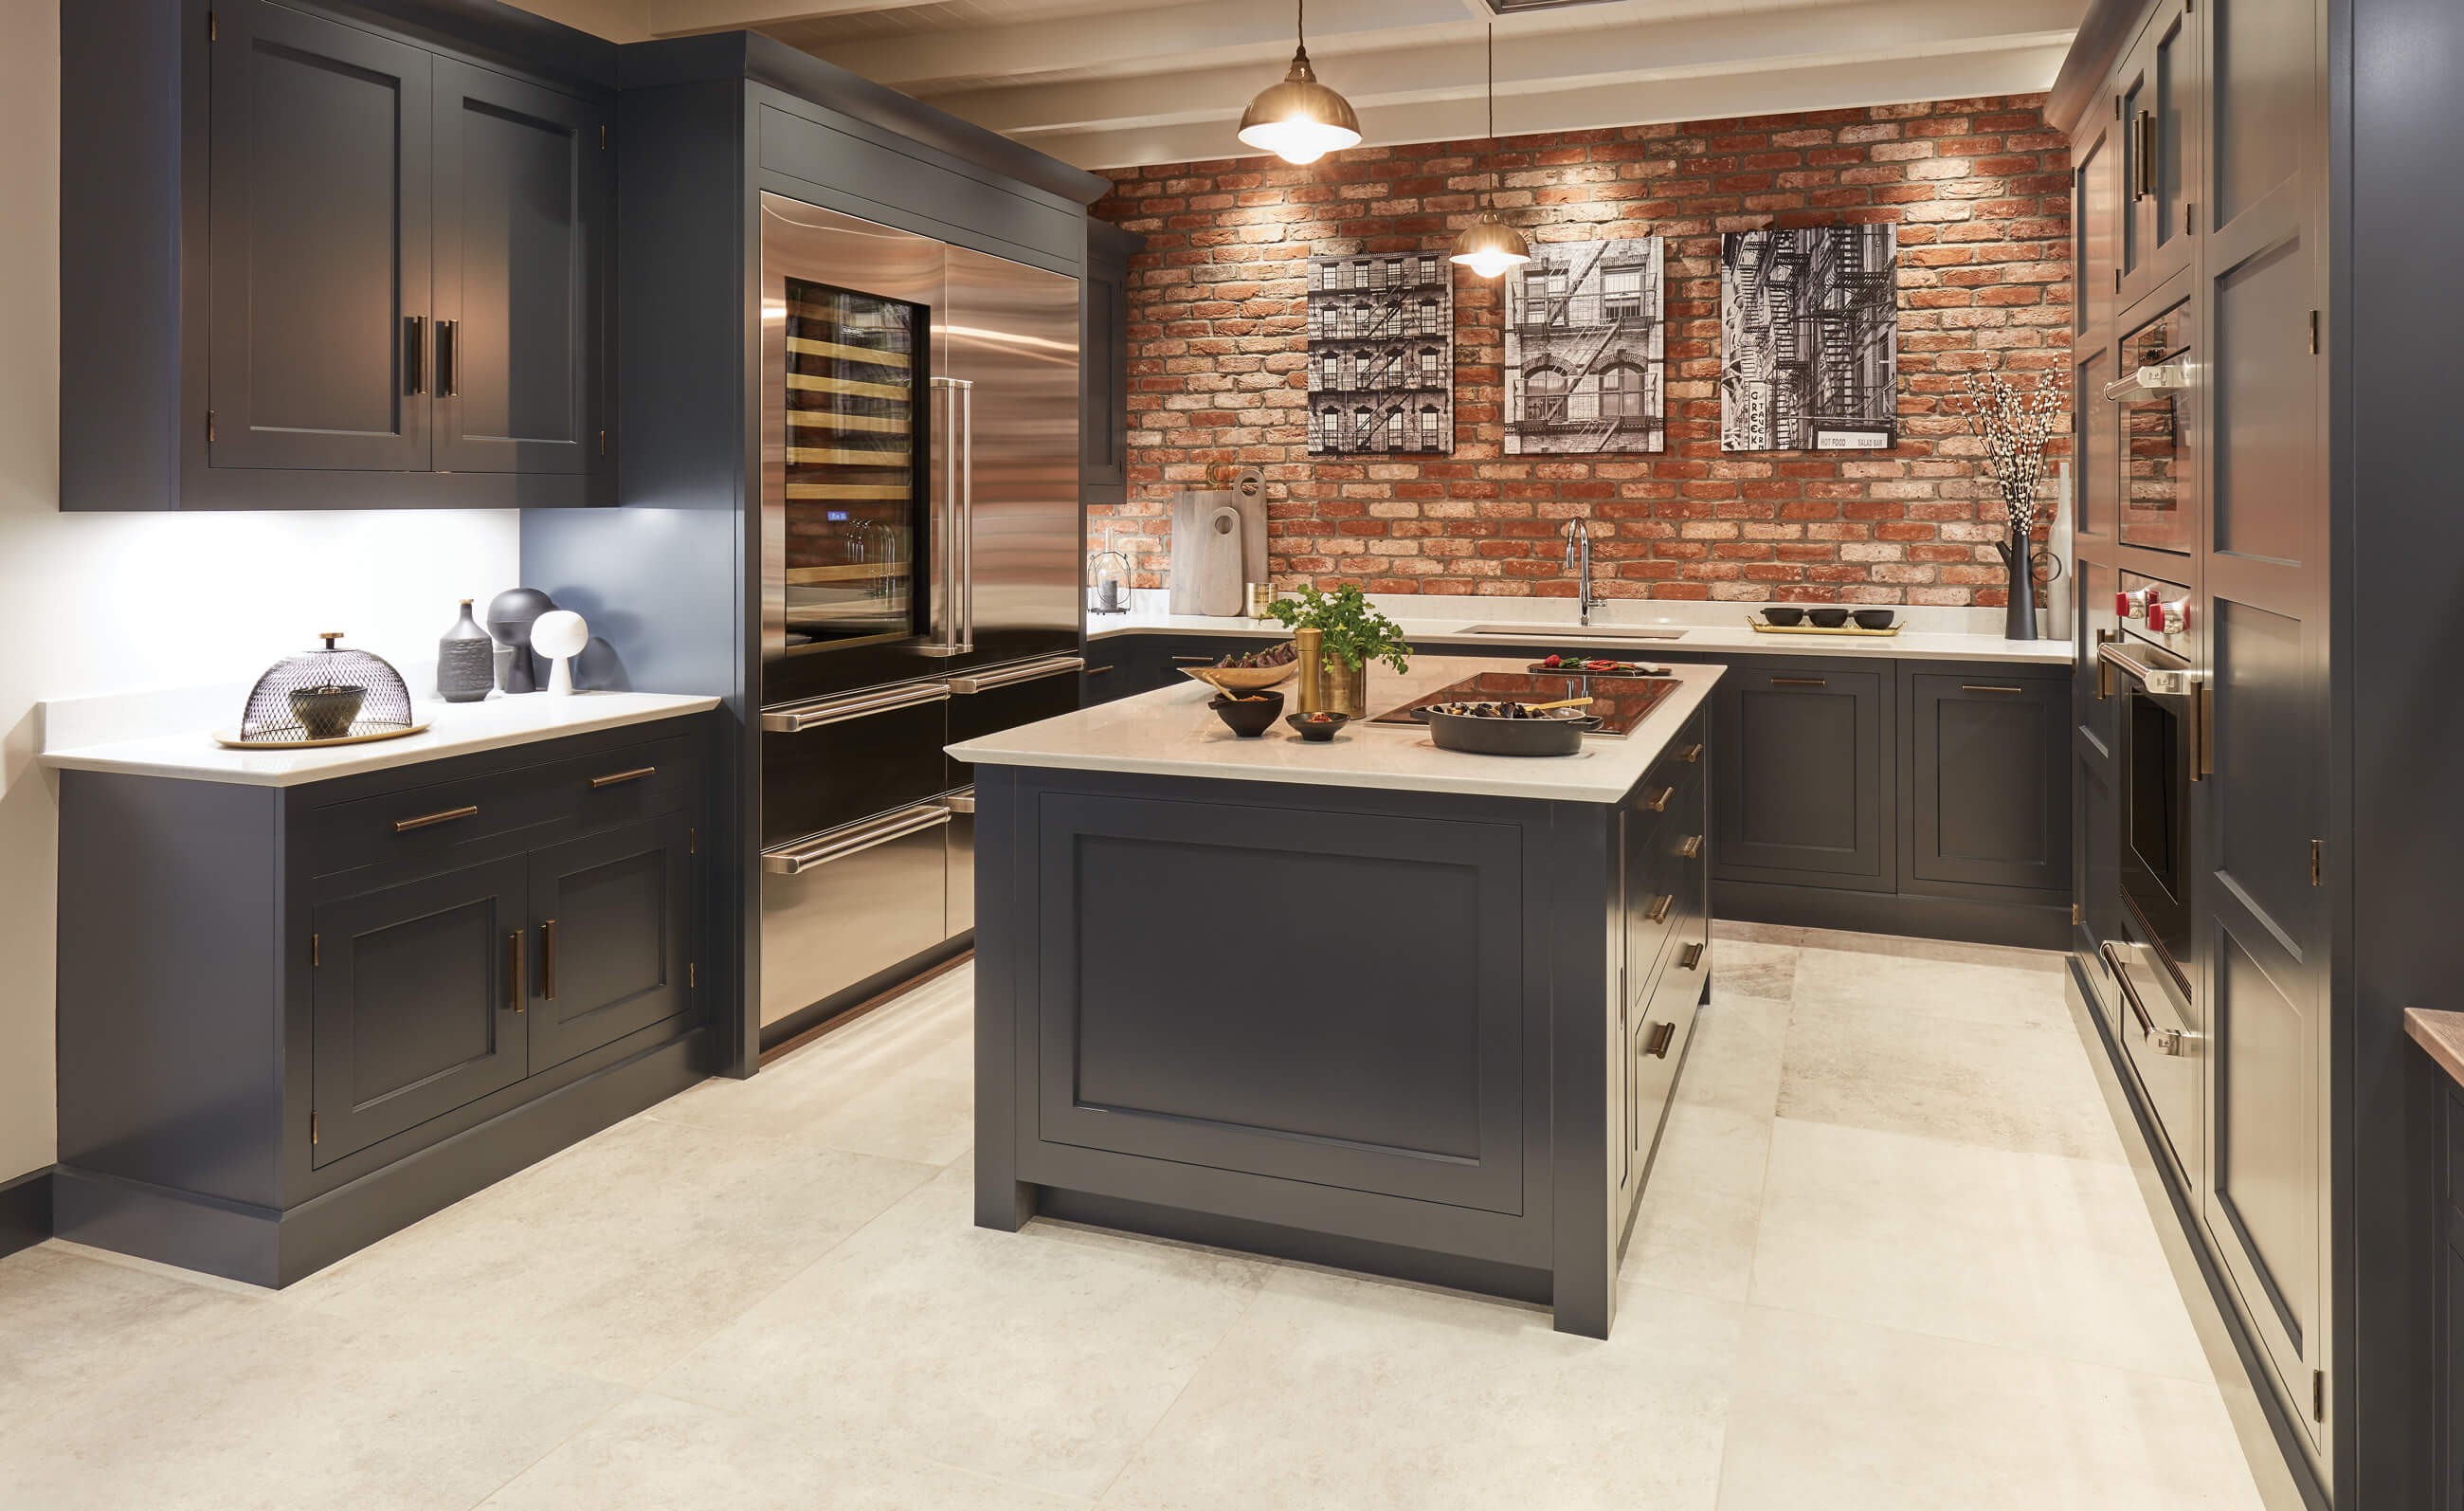 Miraculous Exposed Brick Kitchen Tom Howley Home Remodeling Inspirations Genioncuboardxyz